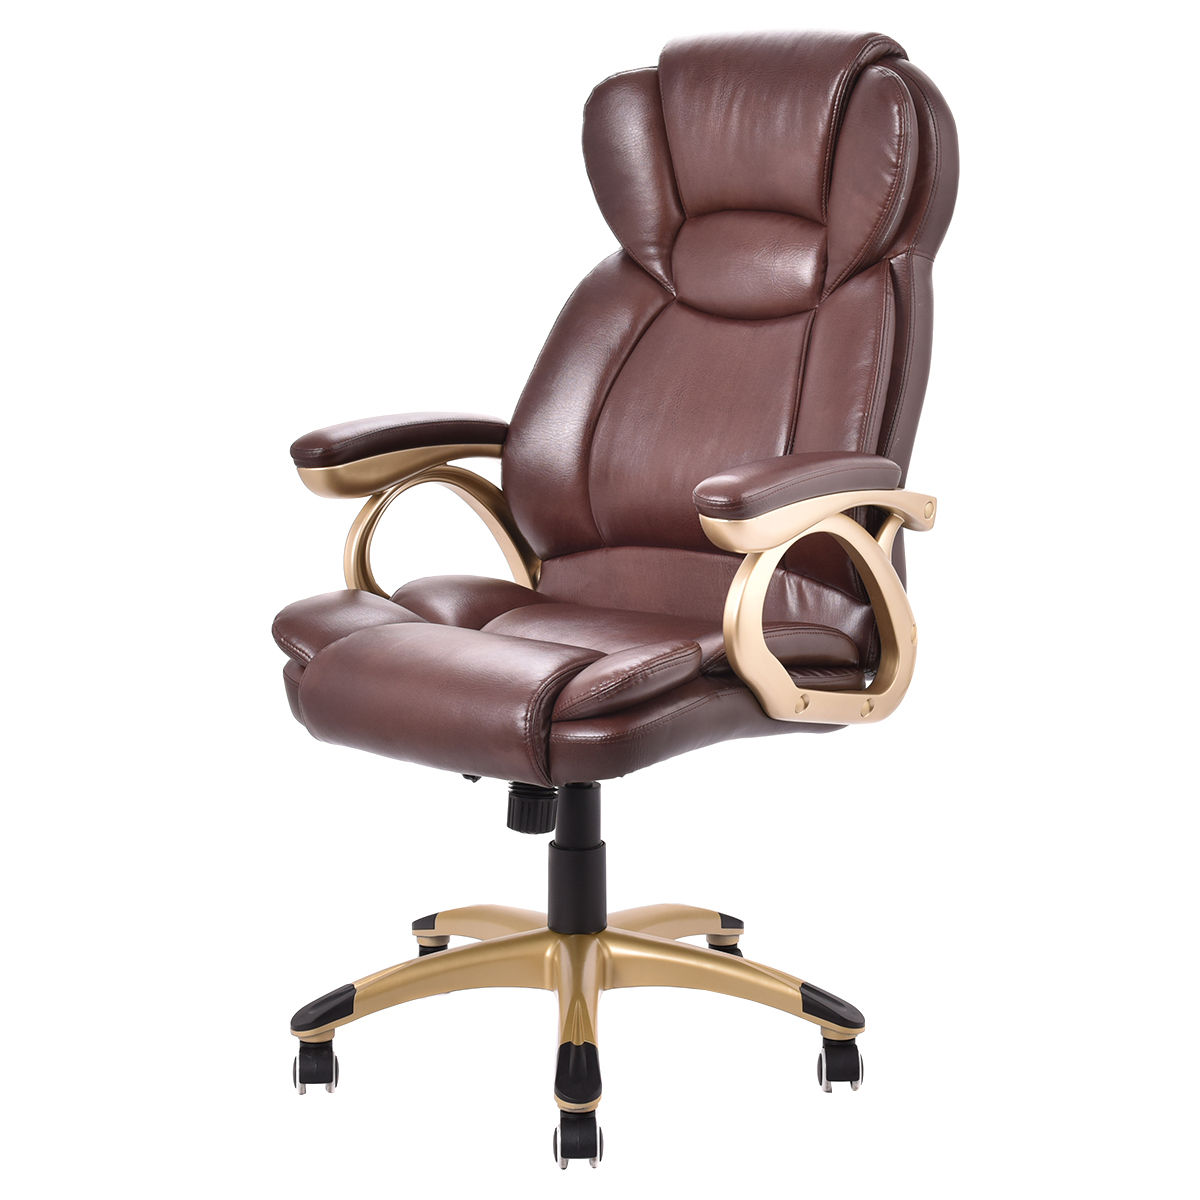 Costway Ergonomic Office Chair PU Leather High Back Executive ...